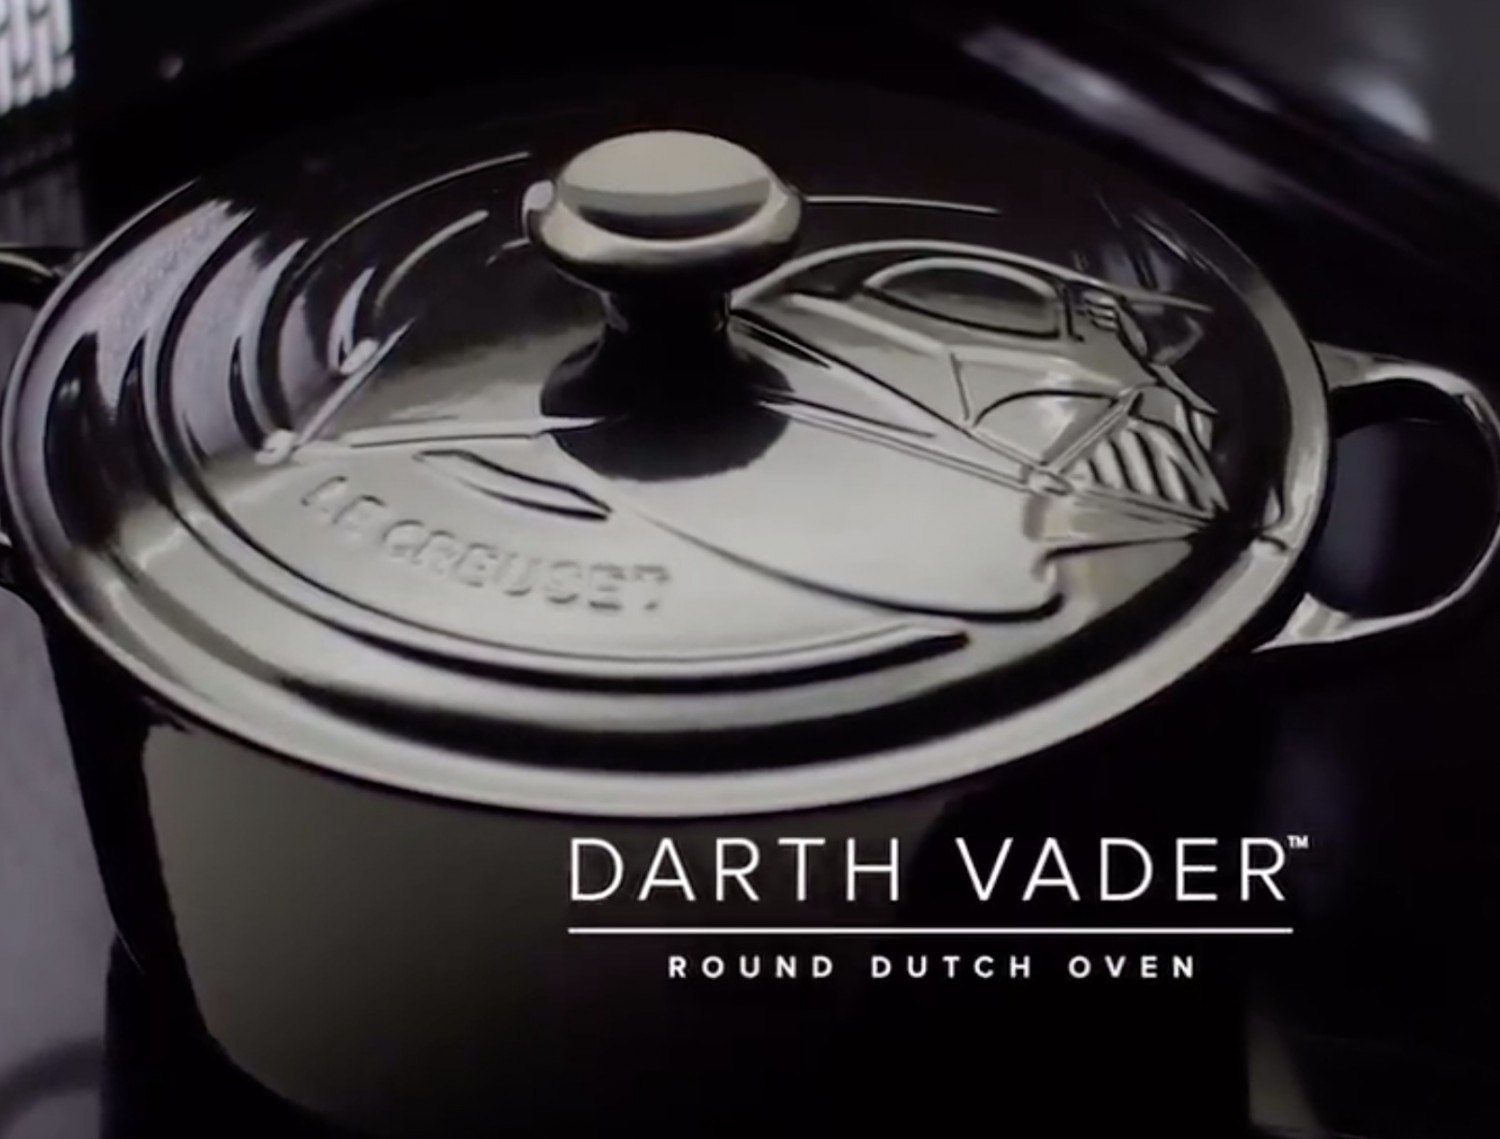 Le Creuset's Star Wars collection includes a $900 dutch oven